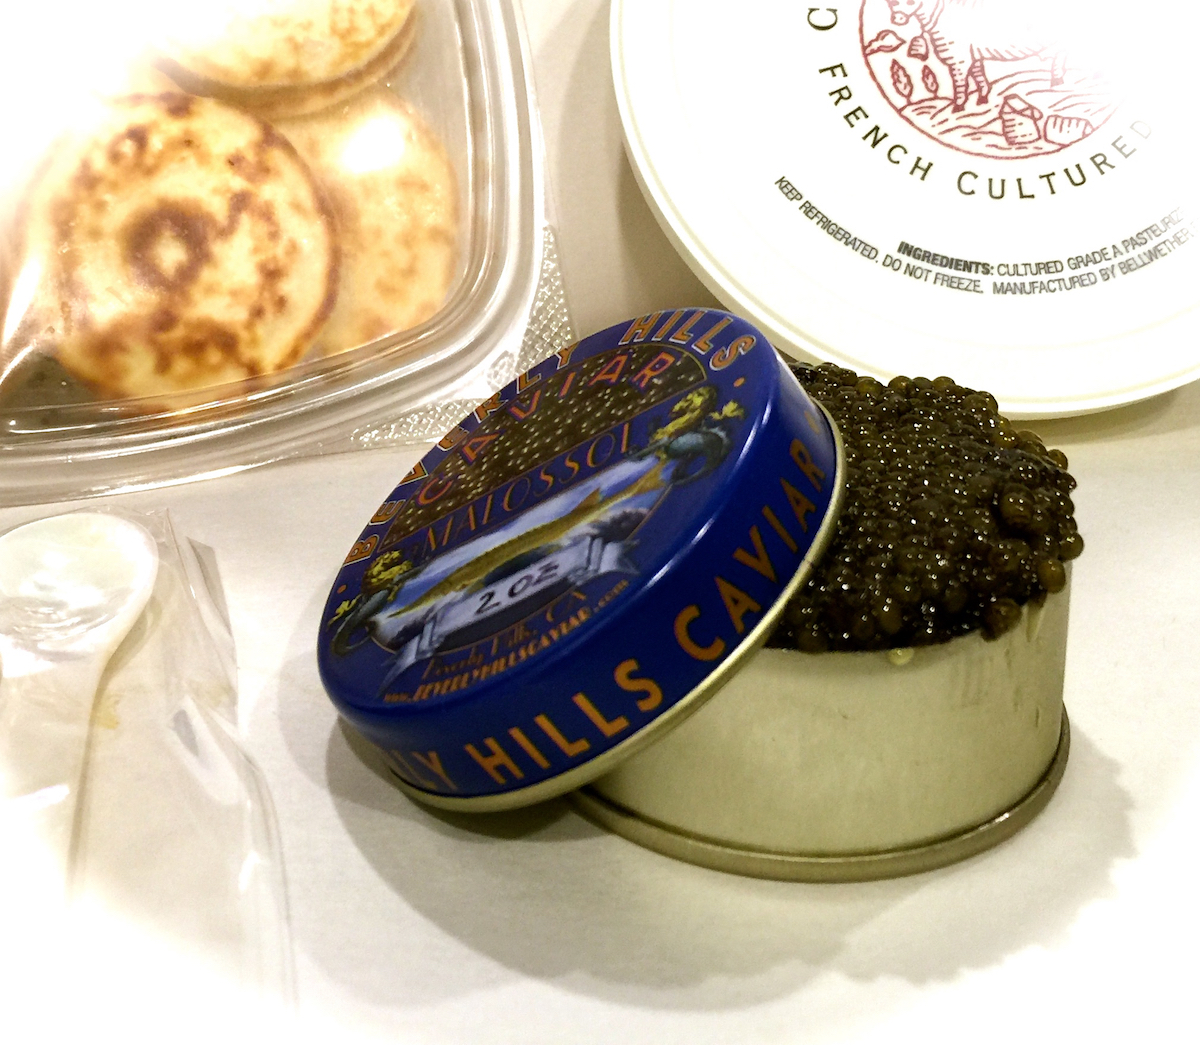 Online Caviar Deal in Ohio Caviar Promo in Ohio caviar deal, caviar promotion, online caviar deal, caviar deals